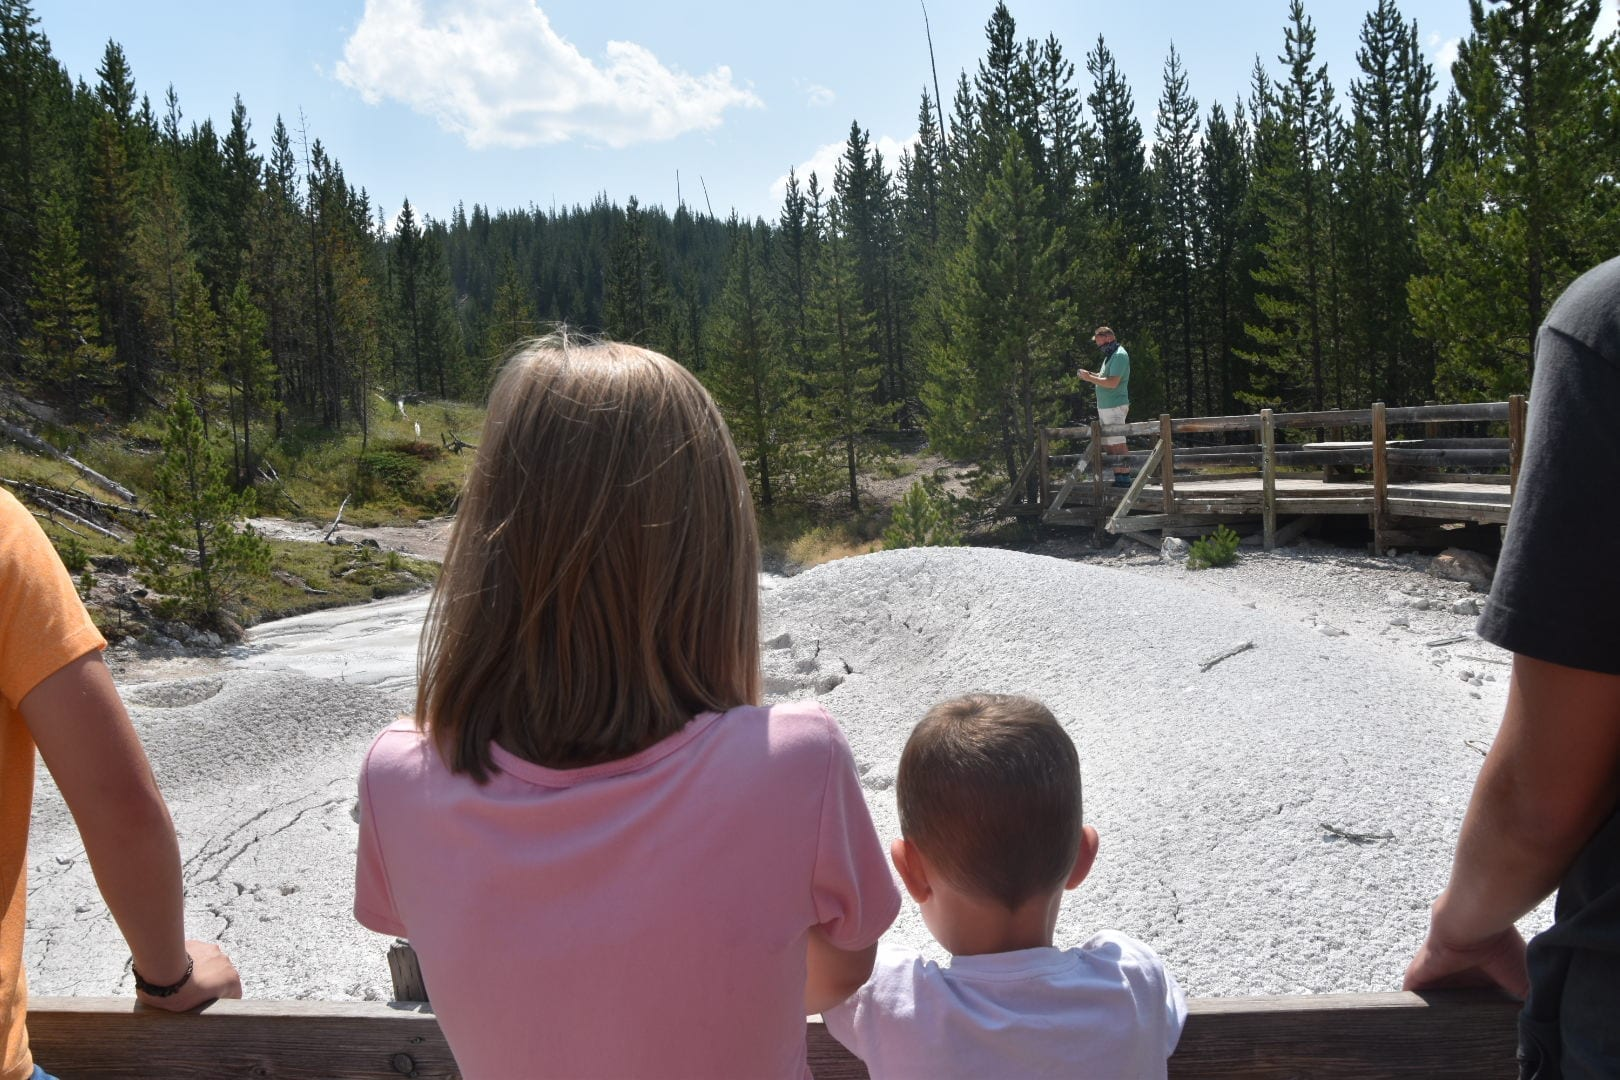 How much time to spend at Yellowstone